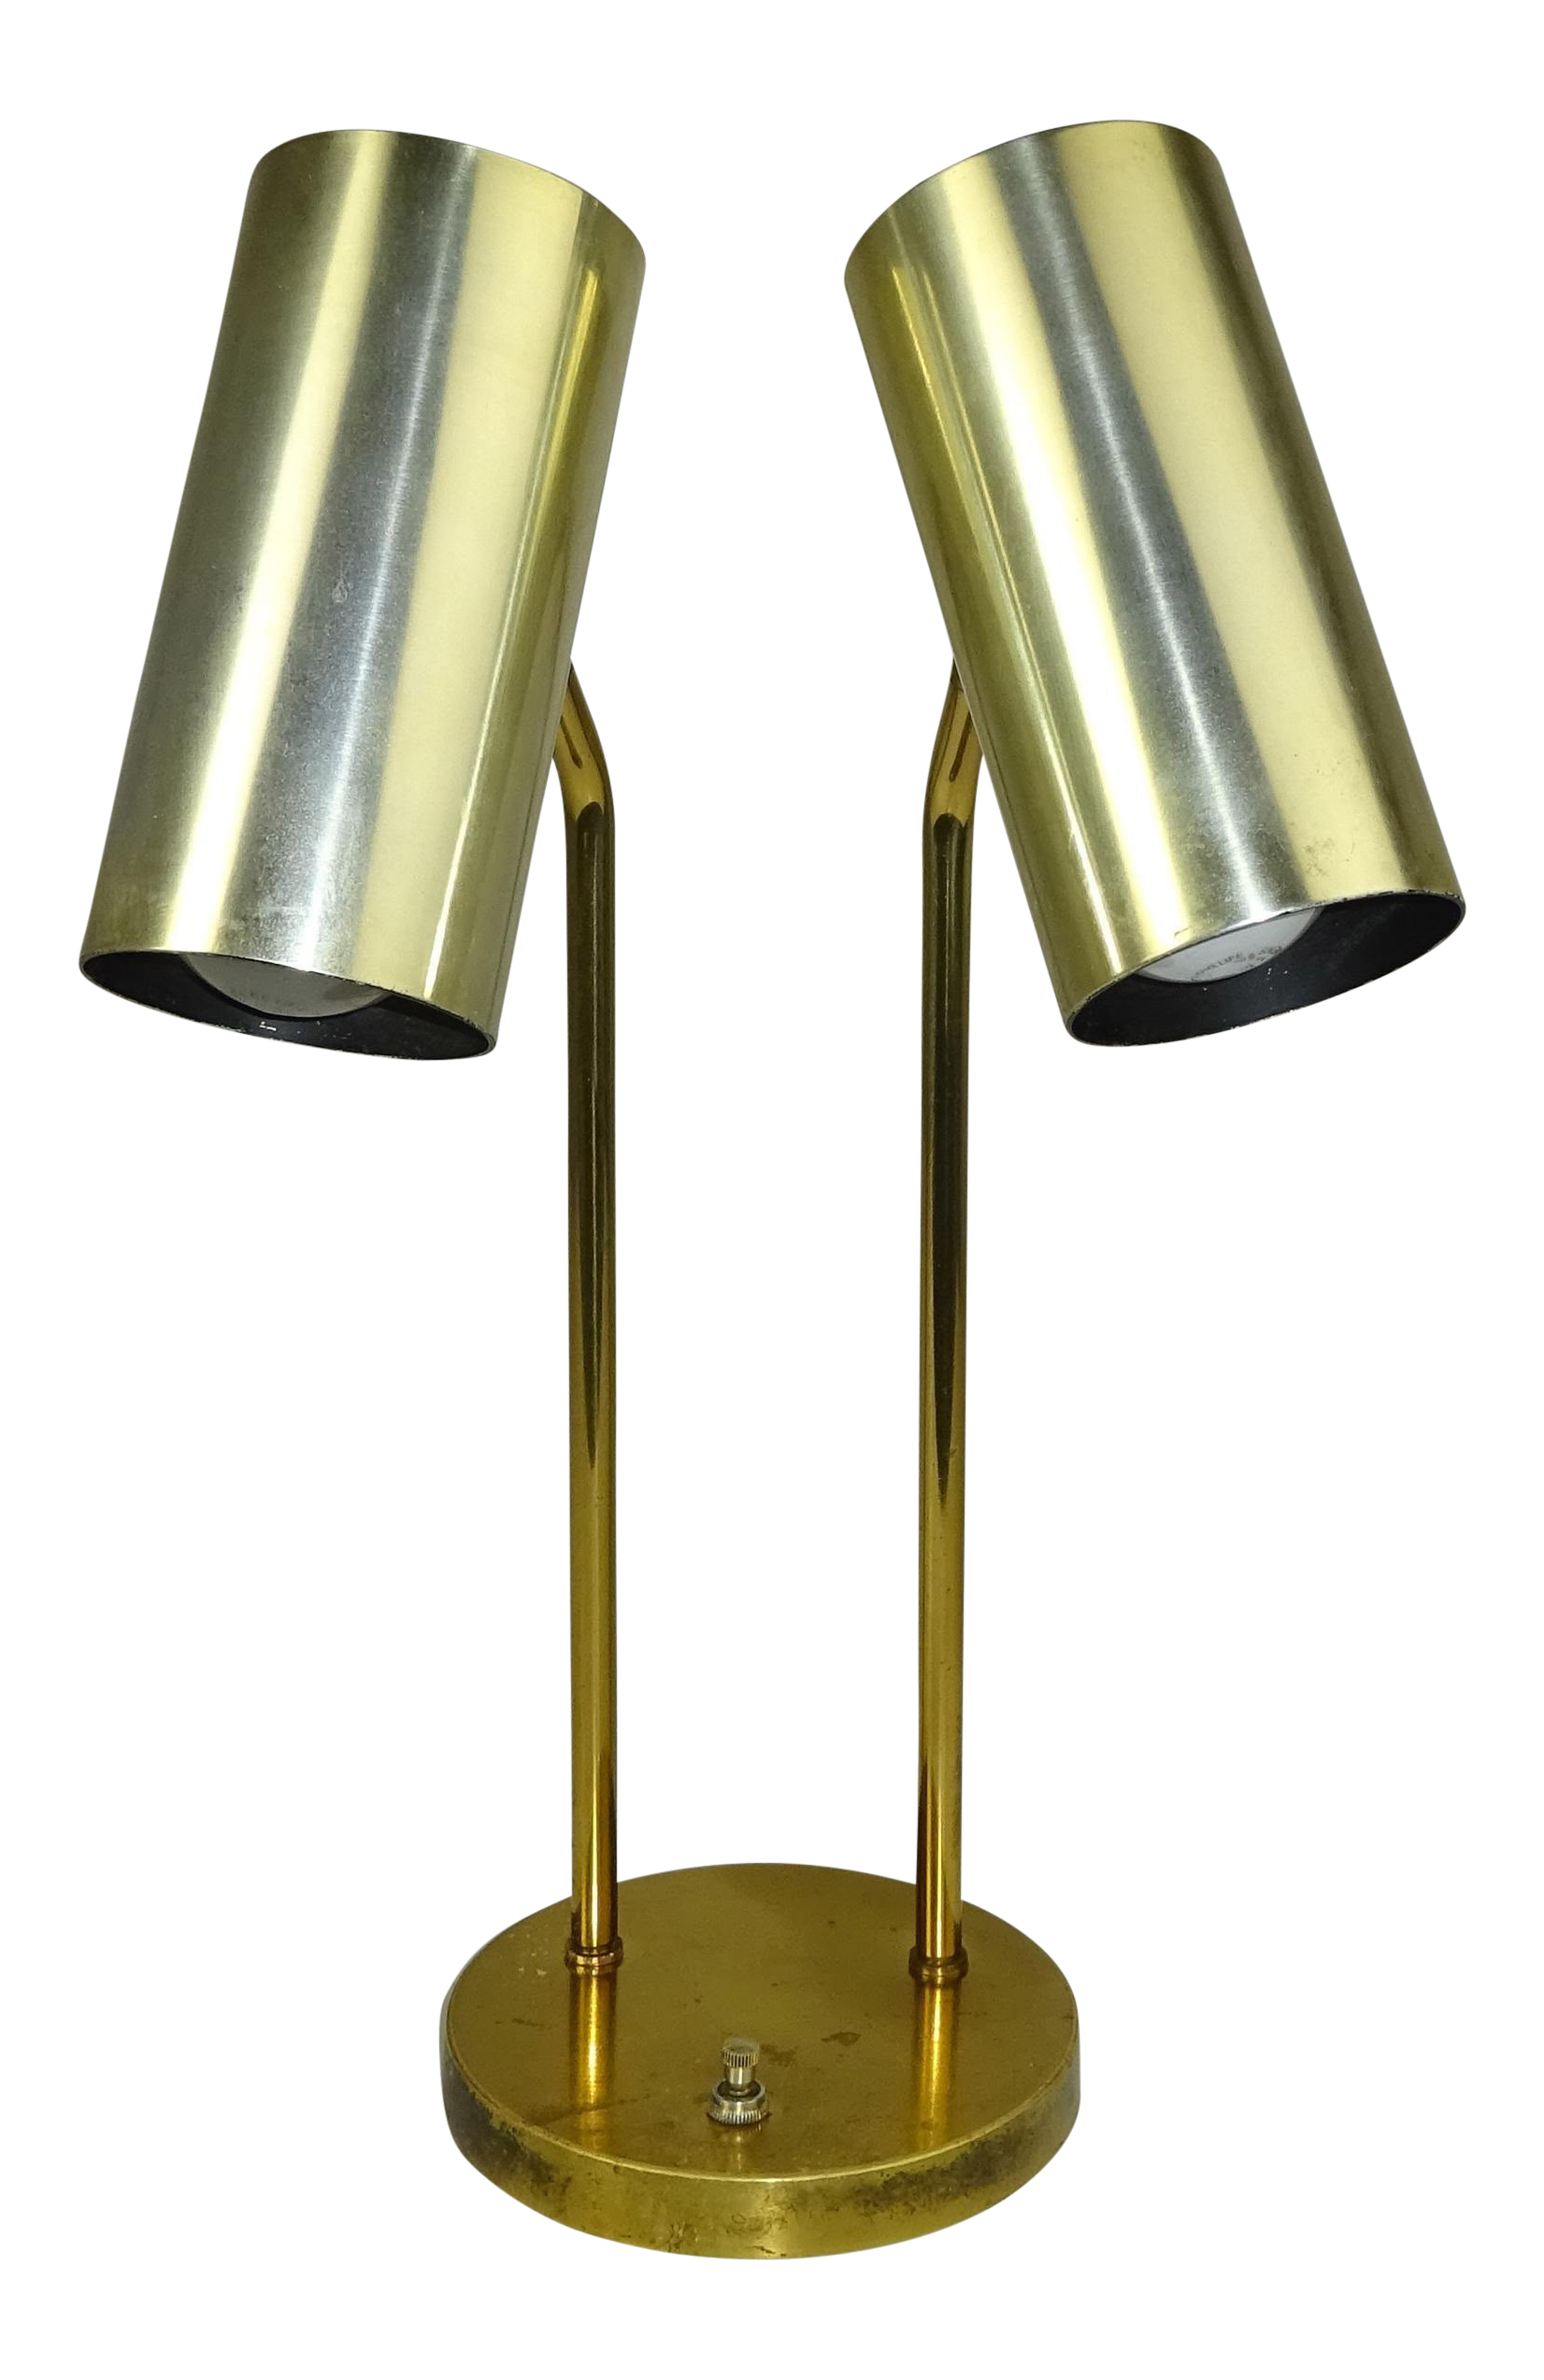 Koch lowy omi double cylindrical shade brass table lamp chairish geotapseo Gallery